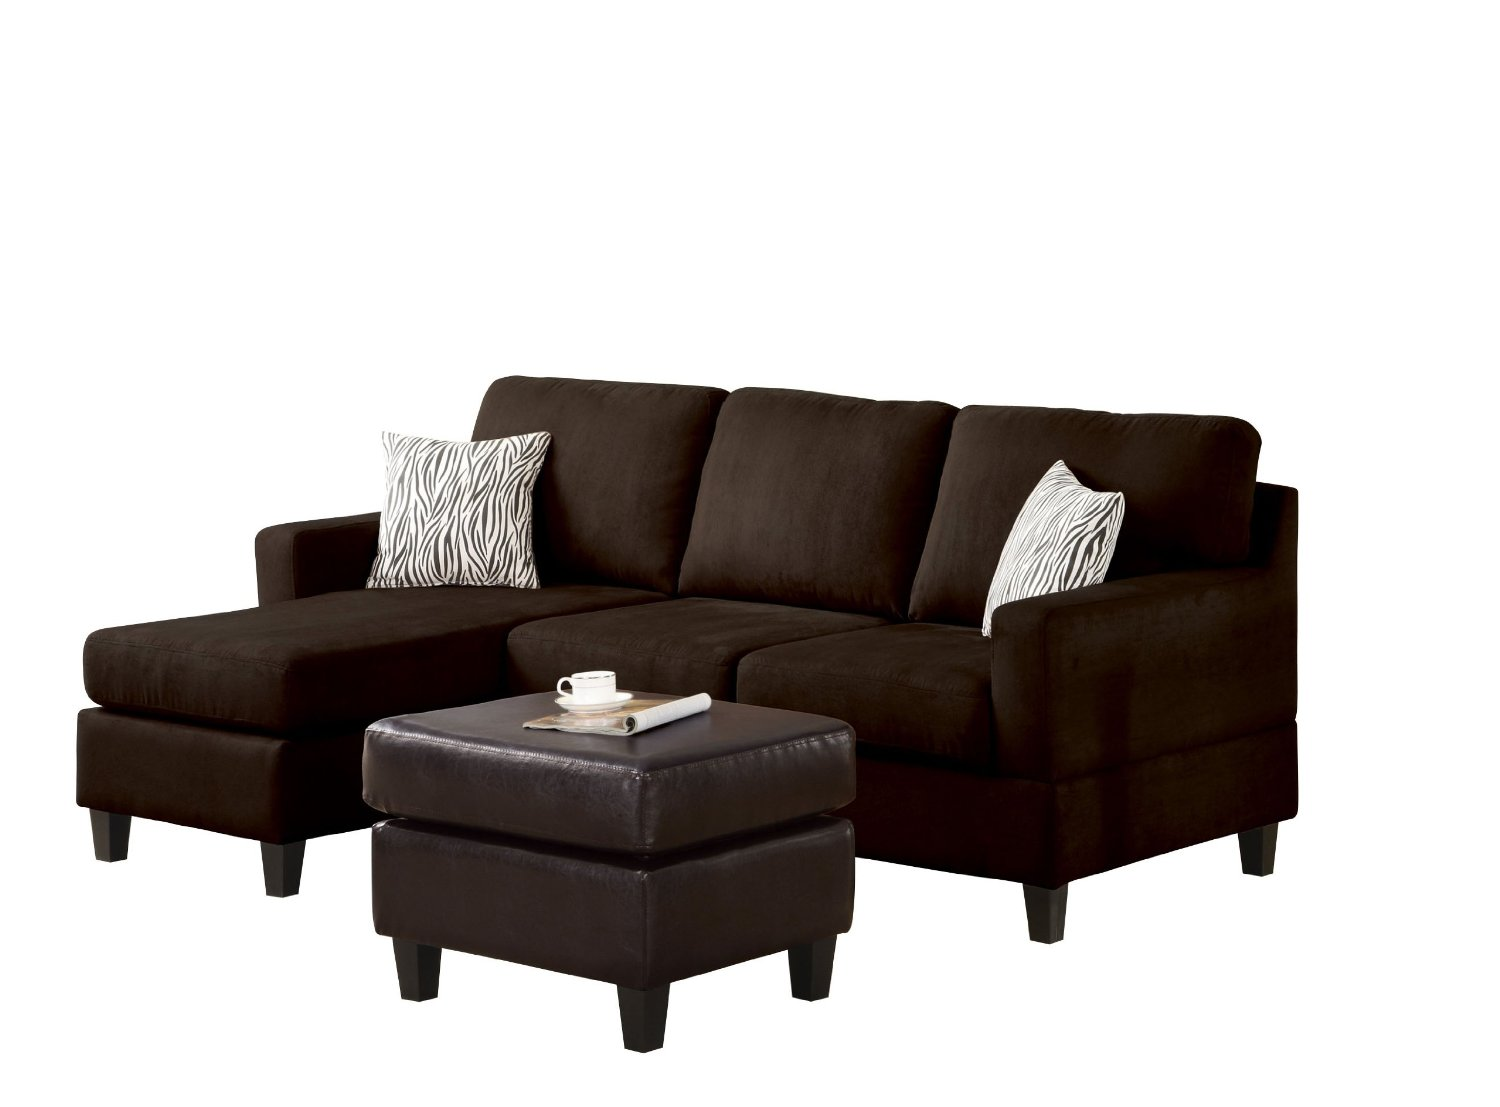 Simmons Reversible Chaise Sofa Microsuede Fabric Sevenmazon Funiture Store Bobkona Soft Touch